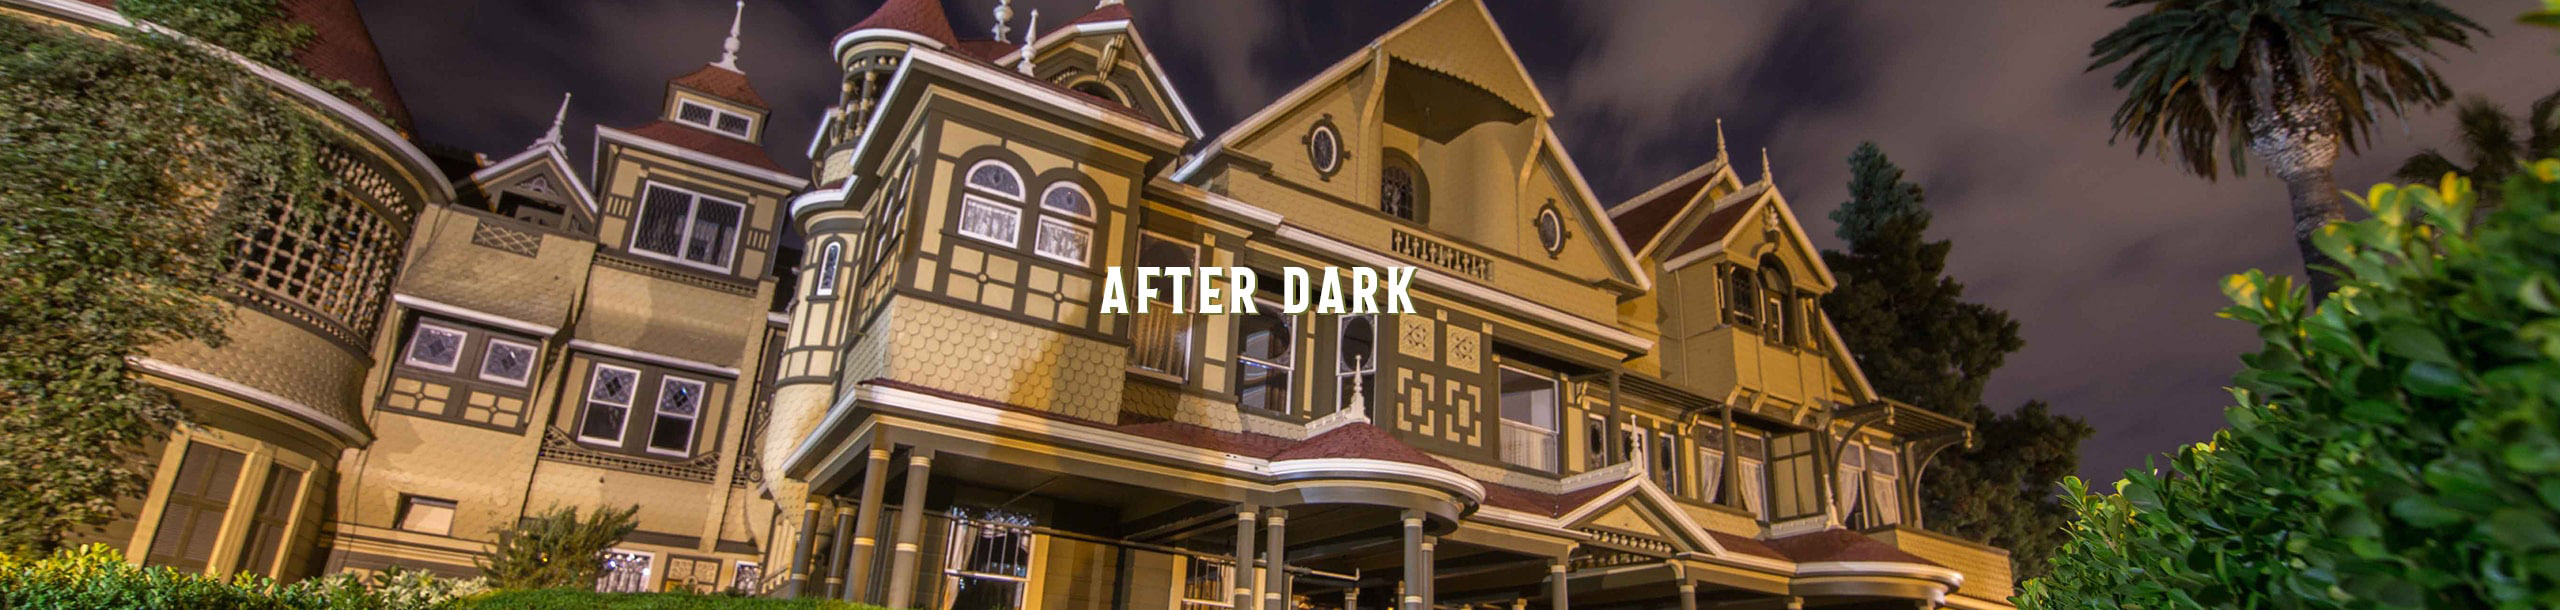 winchester mystery house during night time